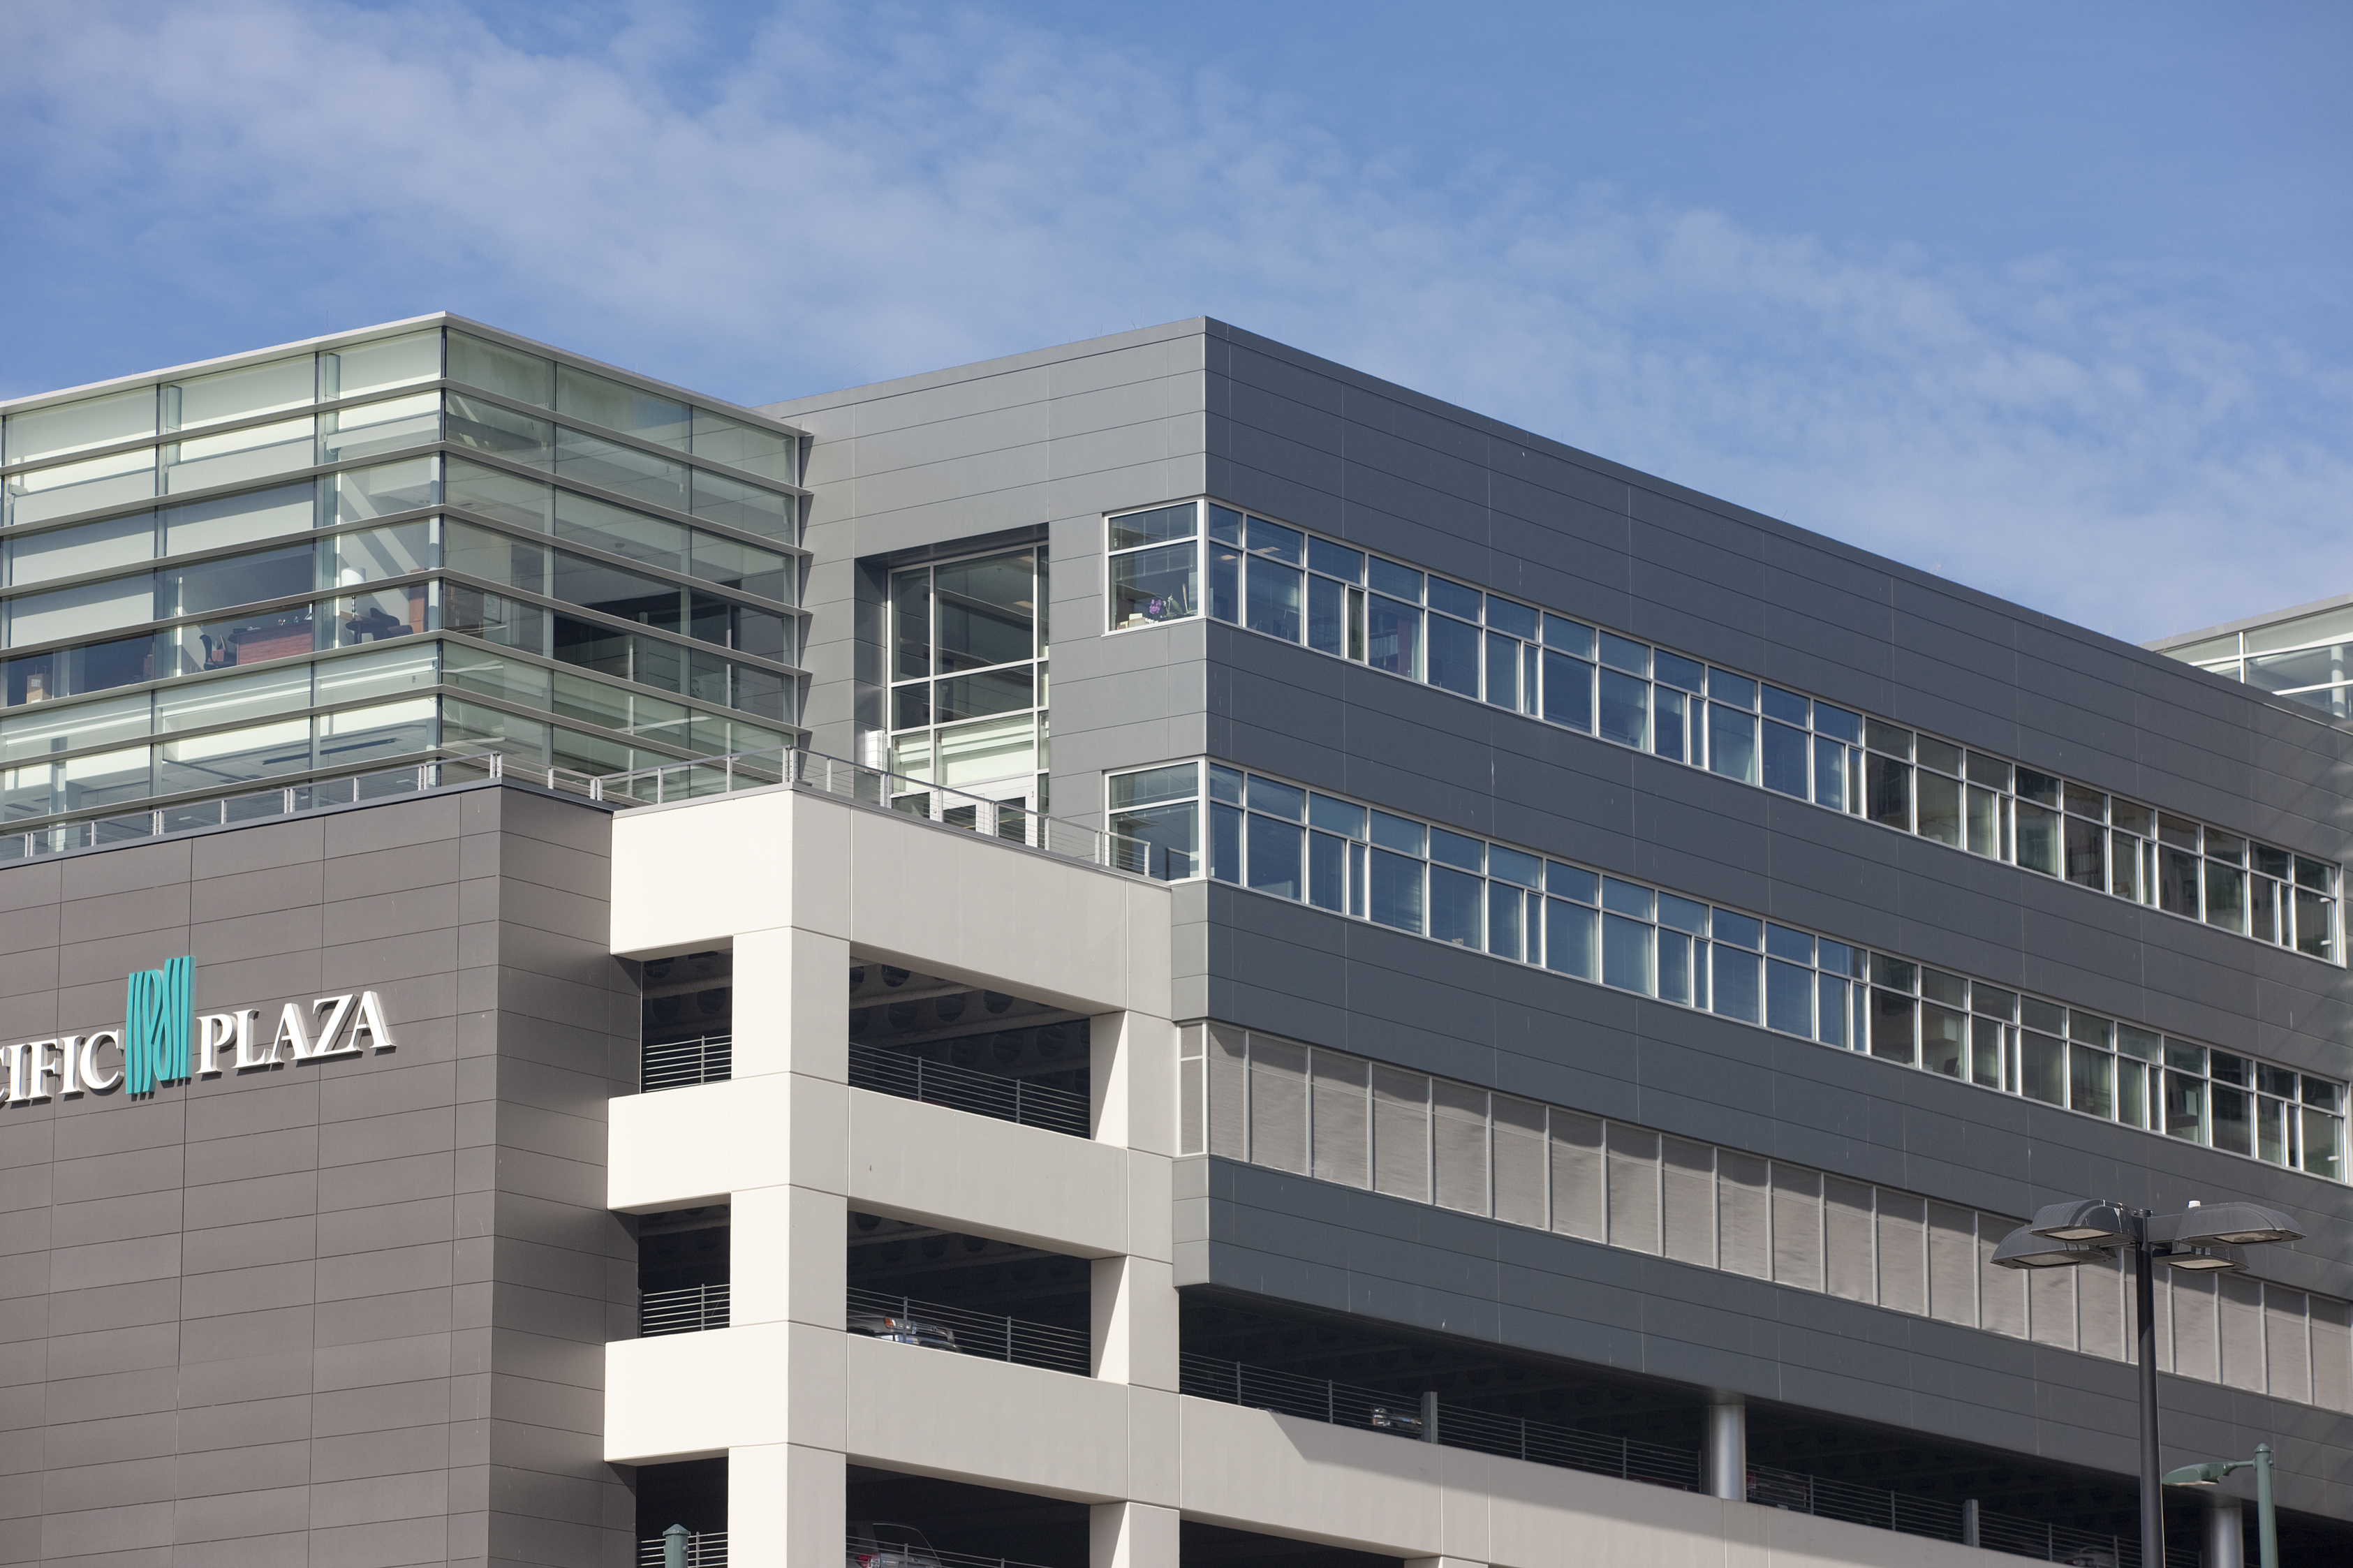 More Than 26,000 Sq. Ft. Of Metl Span CF Insulated Panels Were Used To Clad  The Inhabited Portion Of The Office Building/parking Garage Structure.